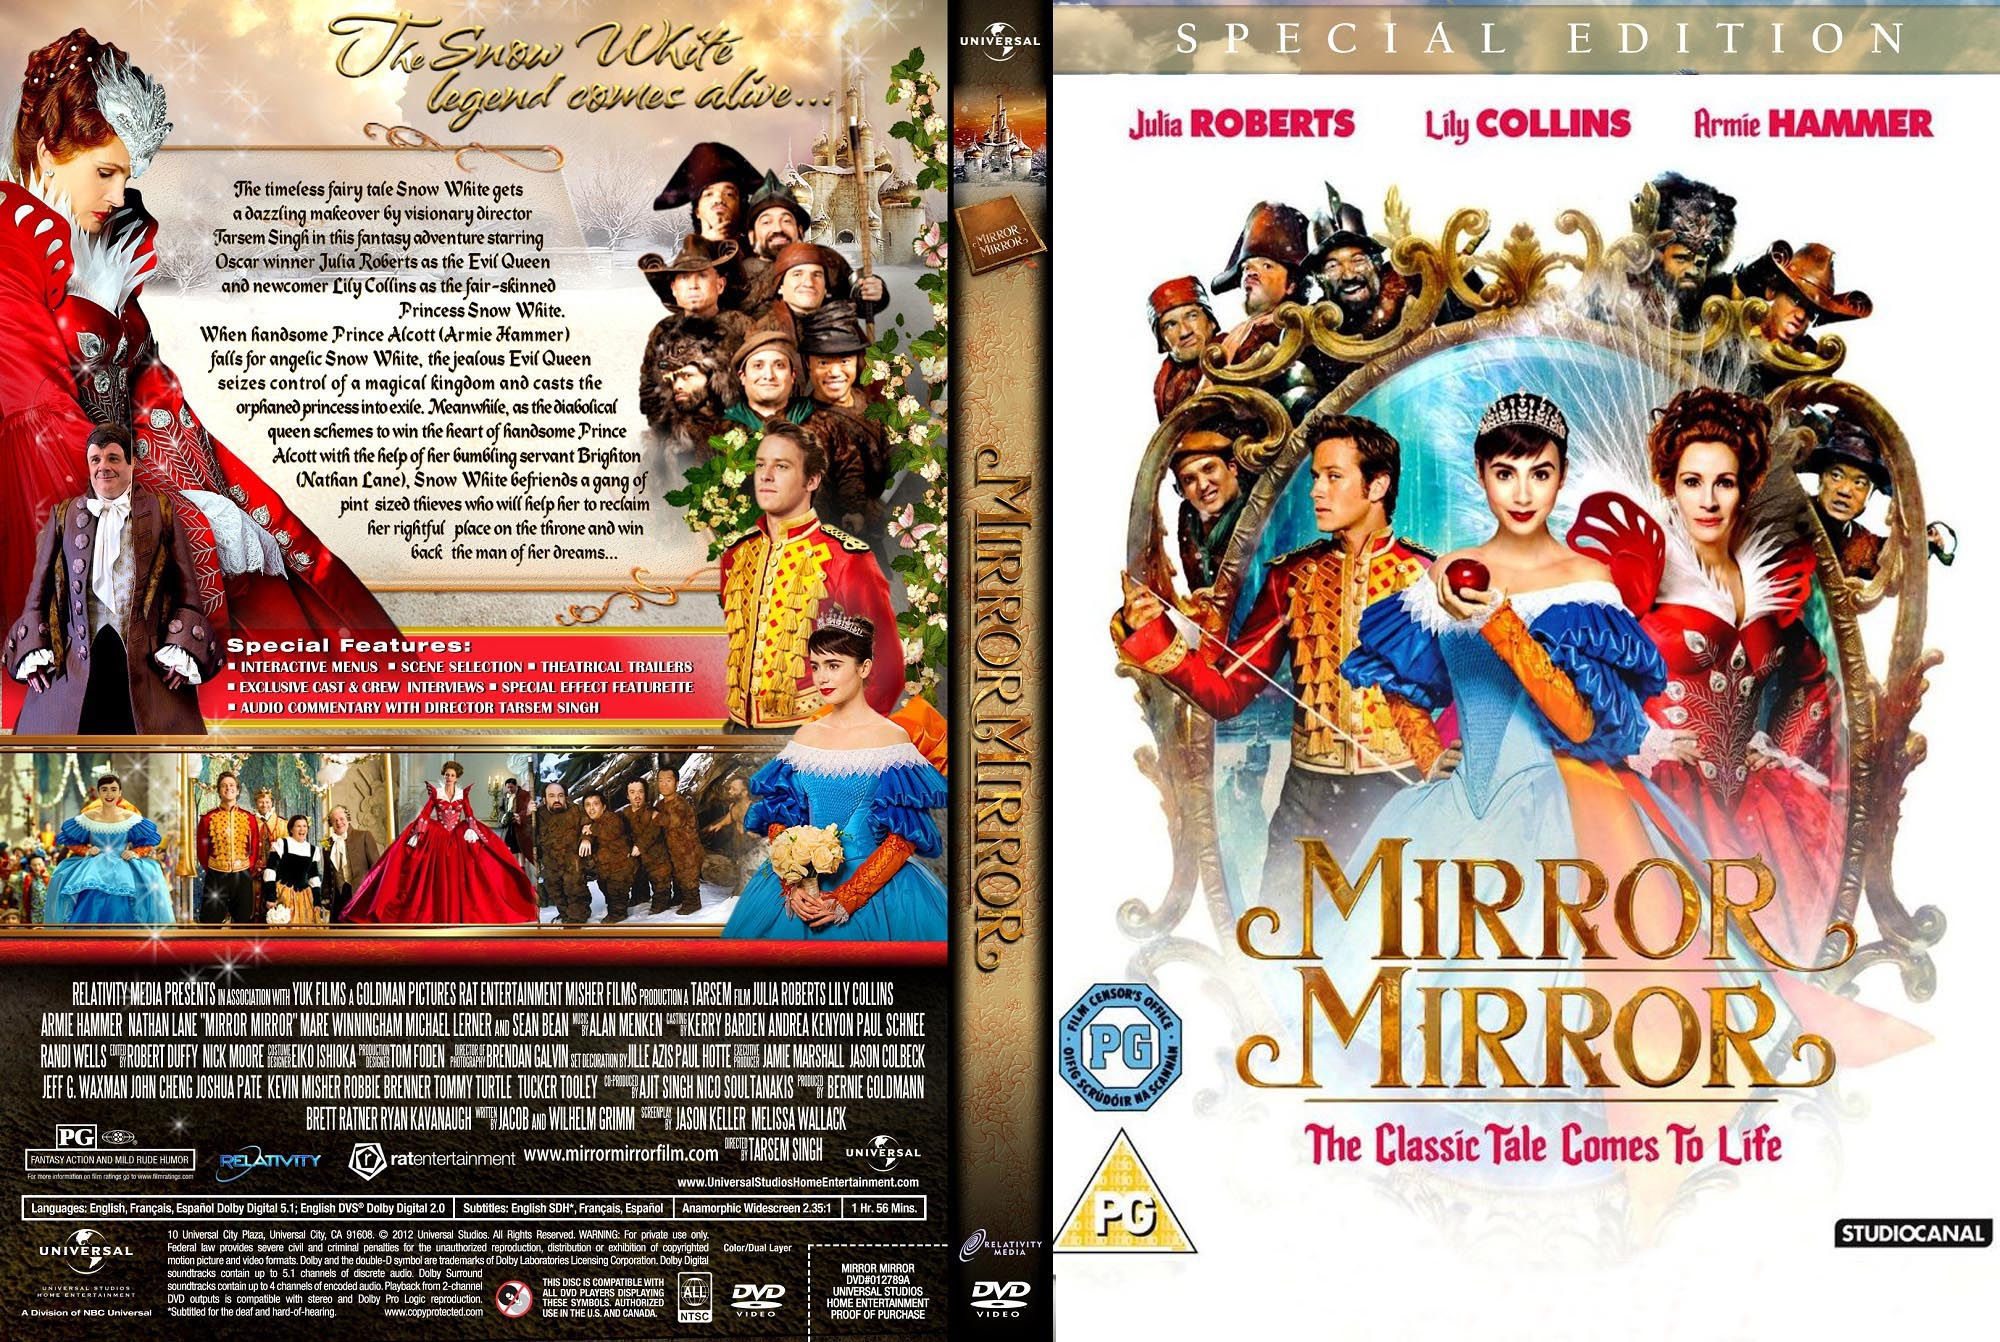 Covers Box Sk Mirror Mirror 2012 High Quality Dvd Blueray Movie